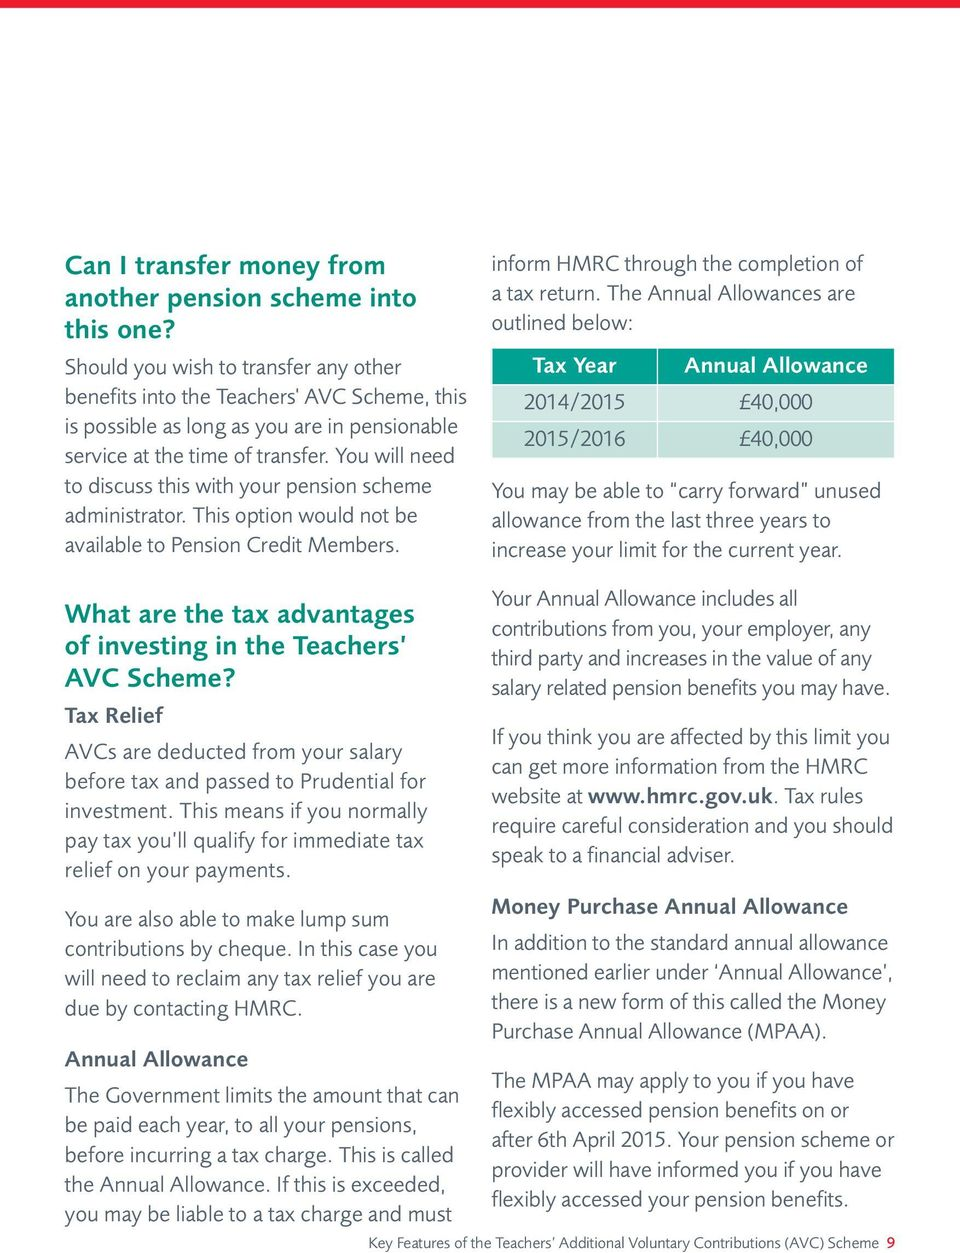 You will need to discuss this with your pension scheme administrator. This option would not be available to Pension Credit Members. inform HMRC through the completion of a tax return.